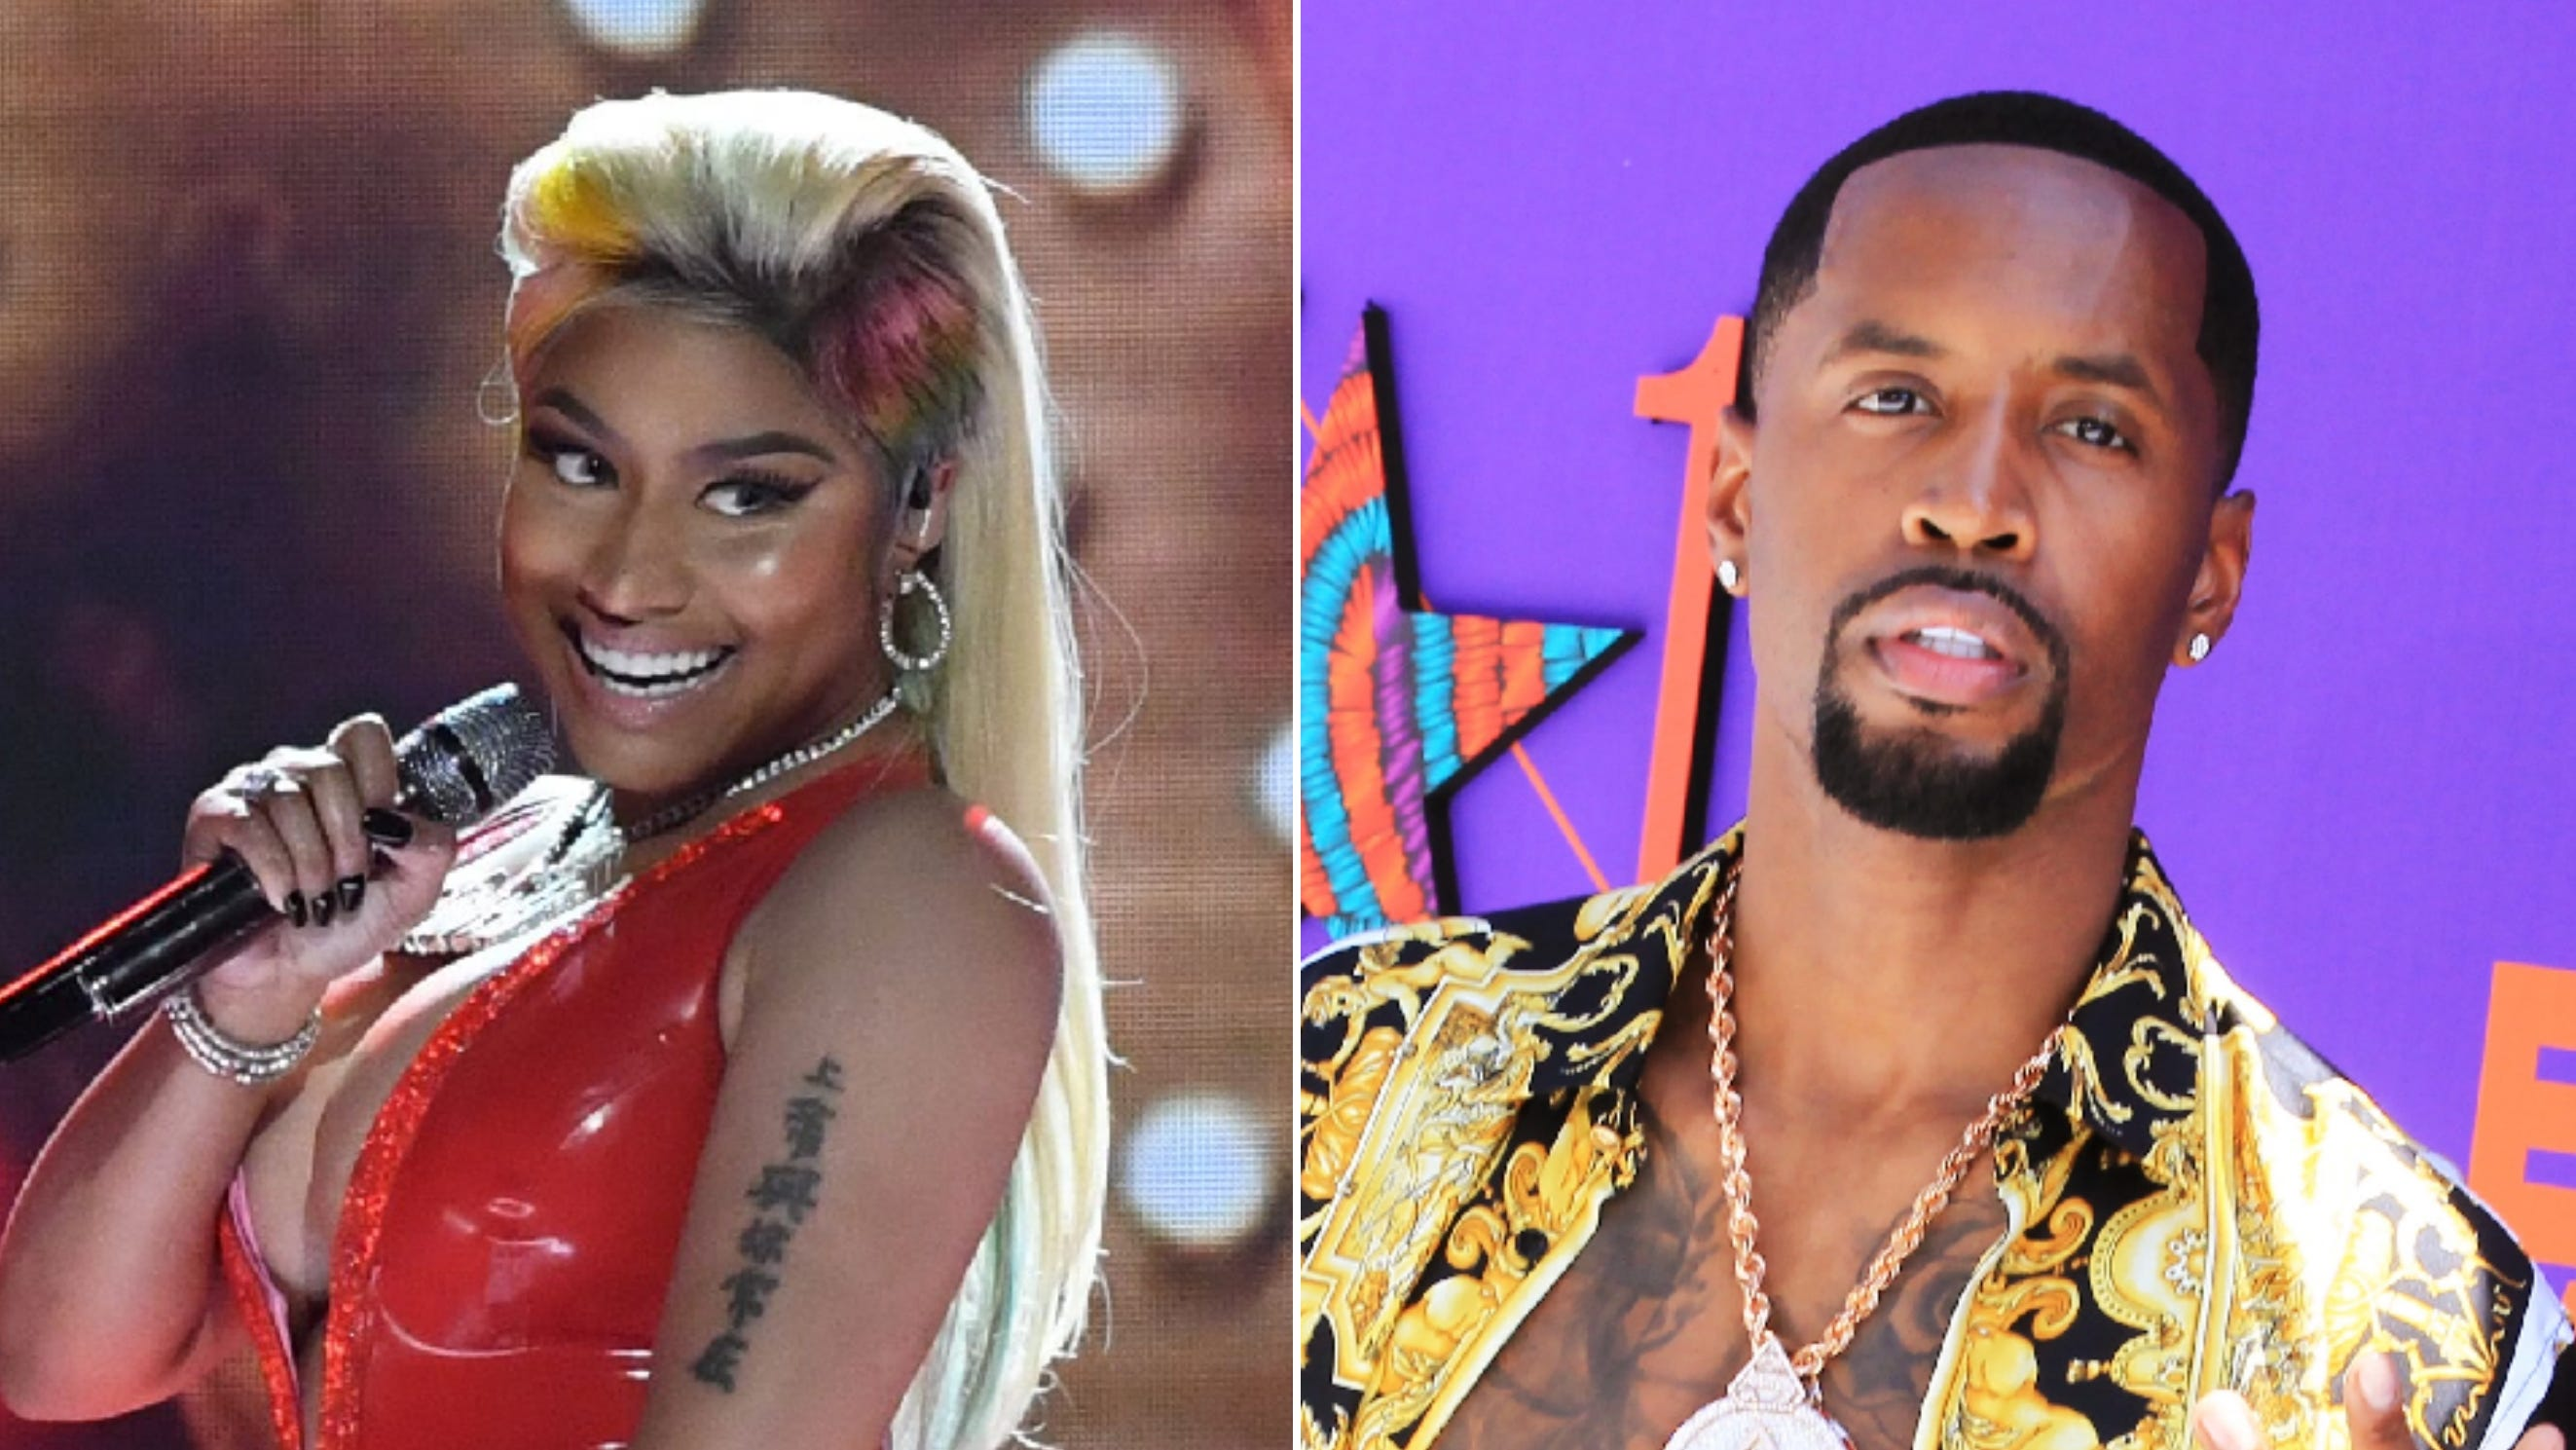 Never ever getting back together: The feud between Nicki Minaj and ex-boyfriend Safaree gets uglier by the tweet.